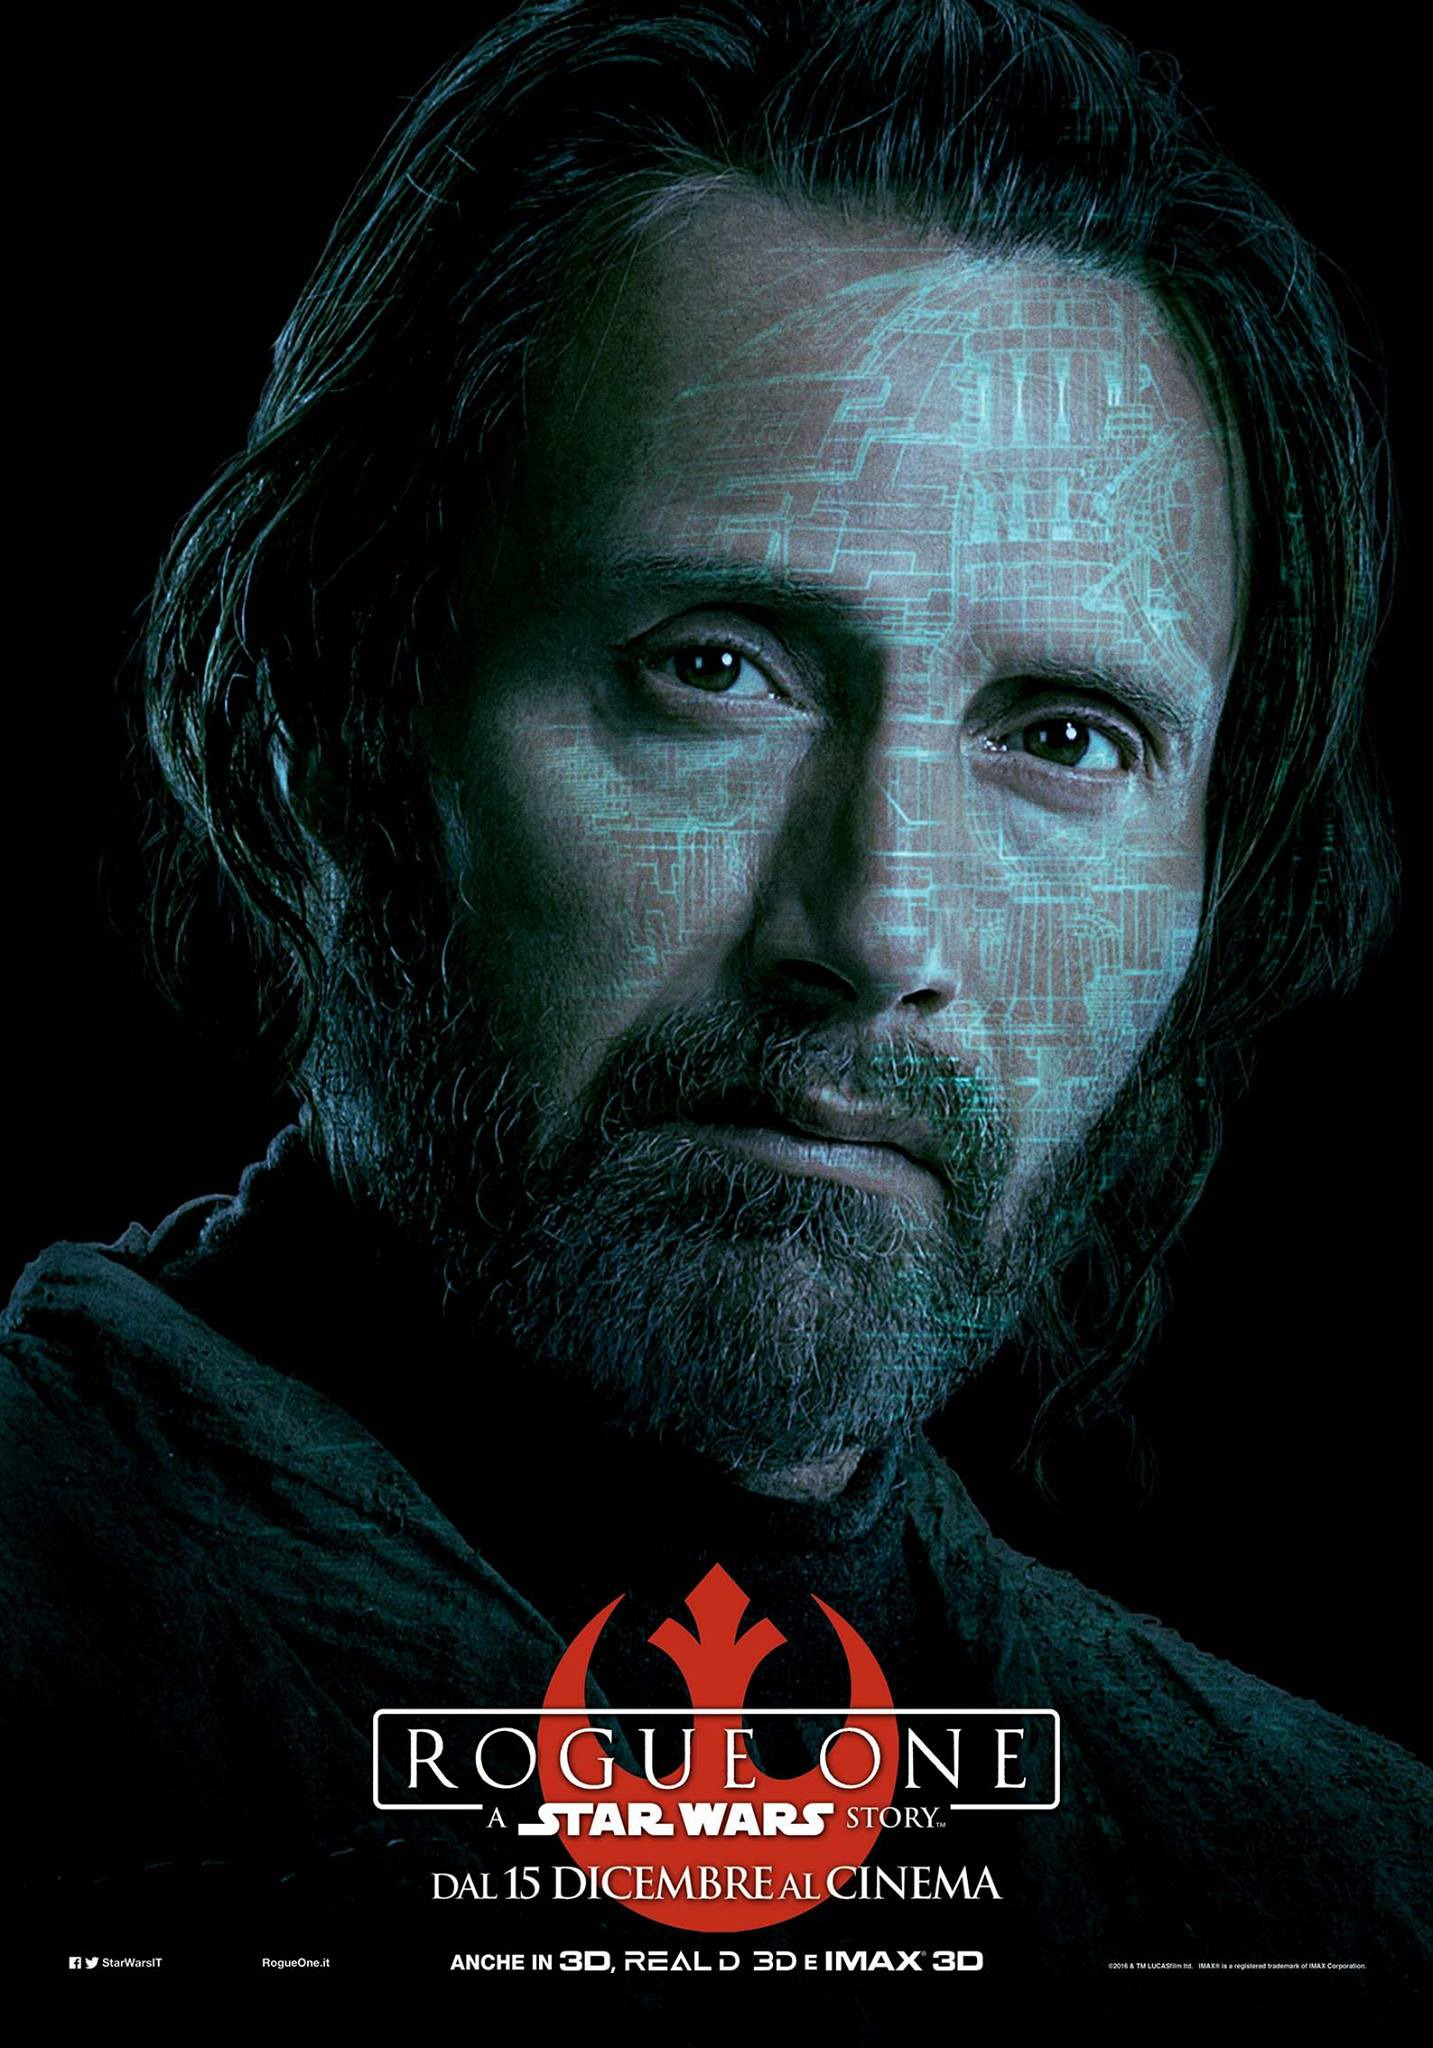 rogue-one-a-star-wars-story-05dezembro2016-3